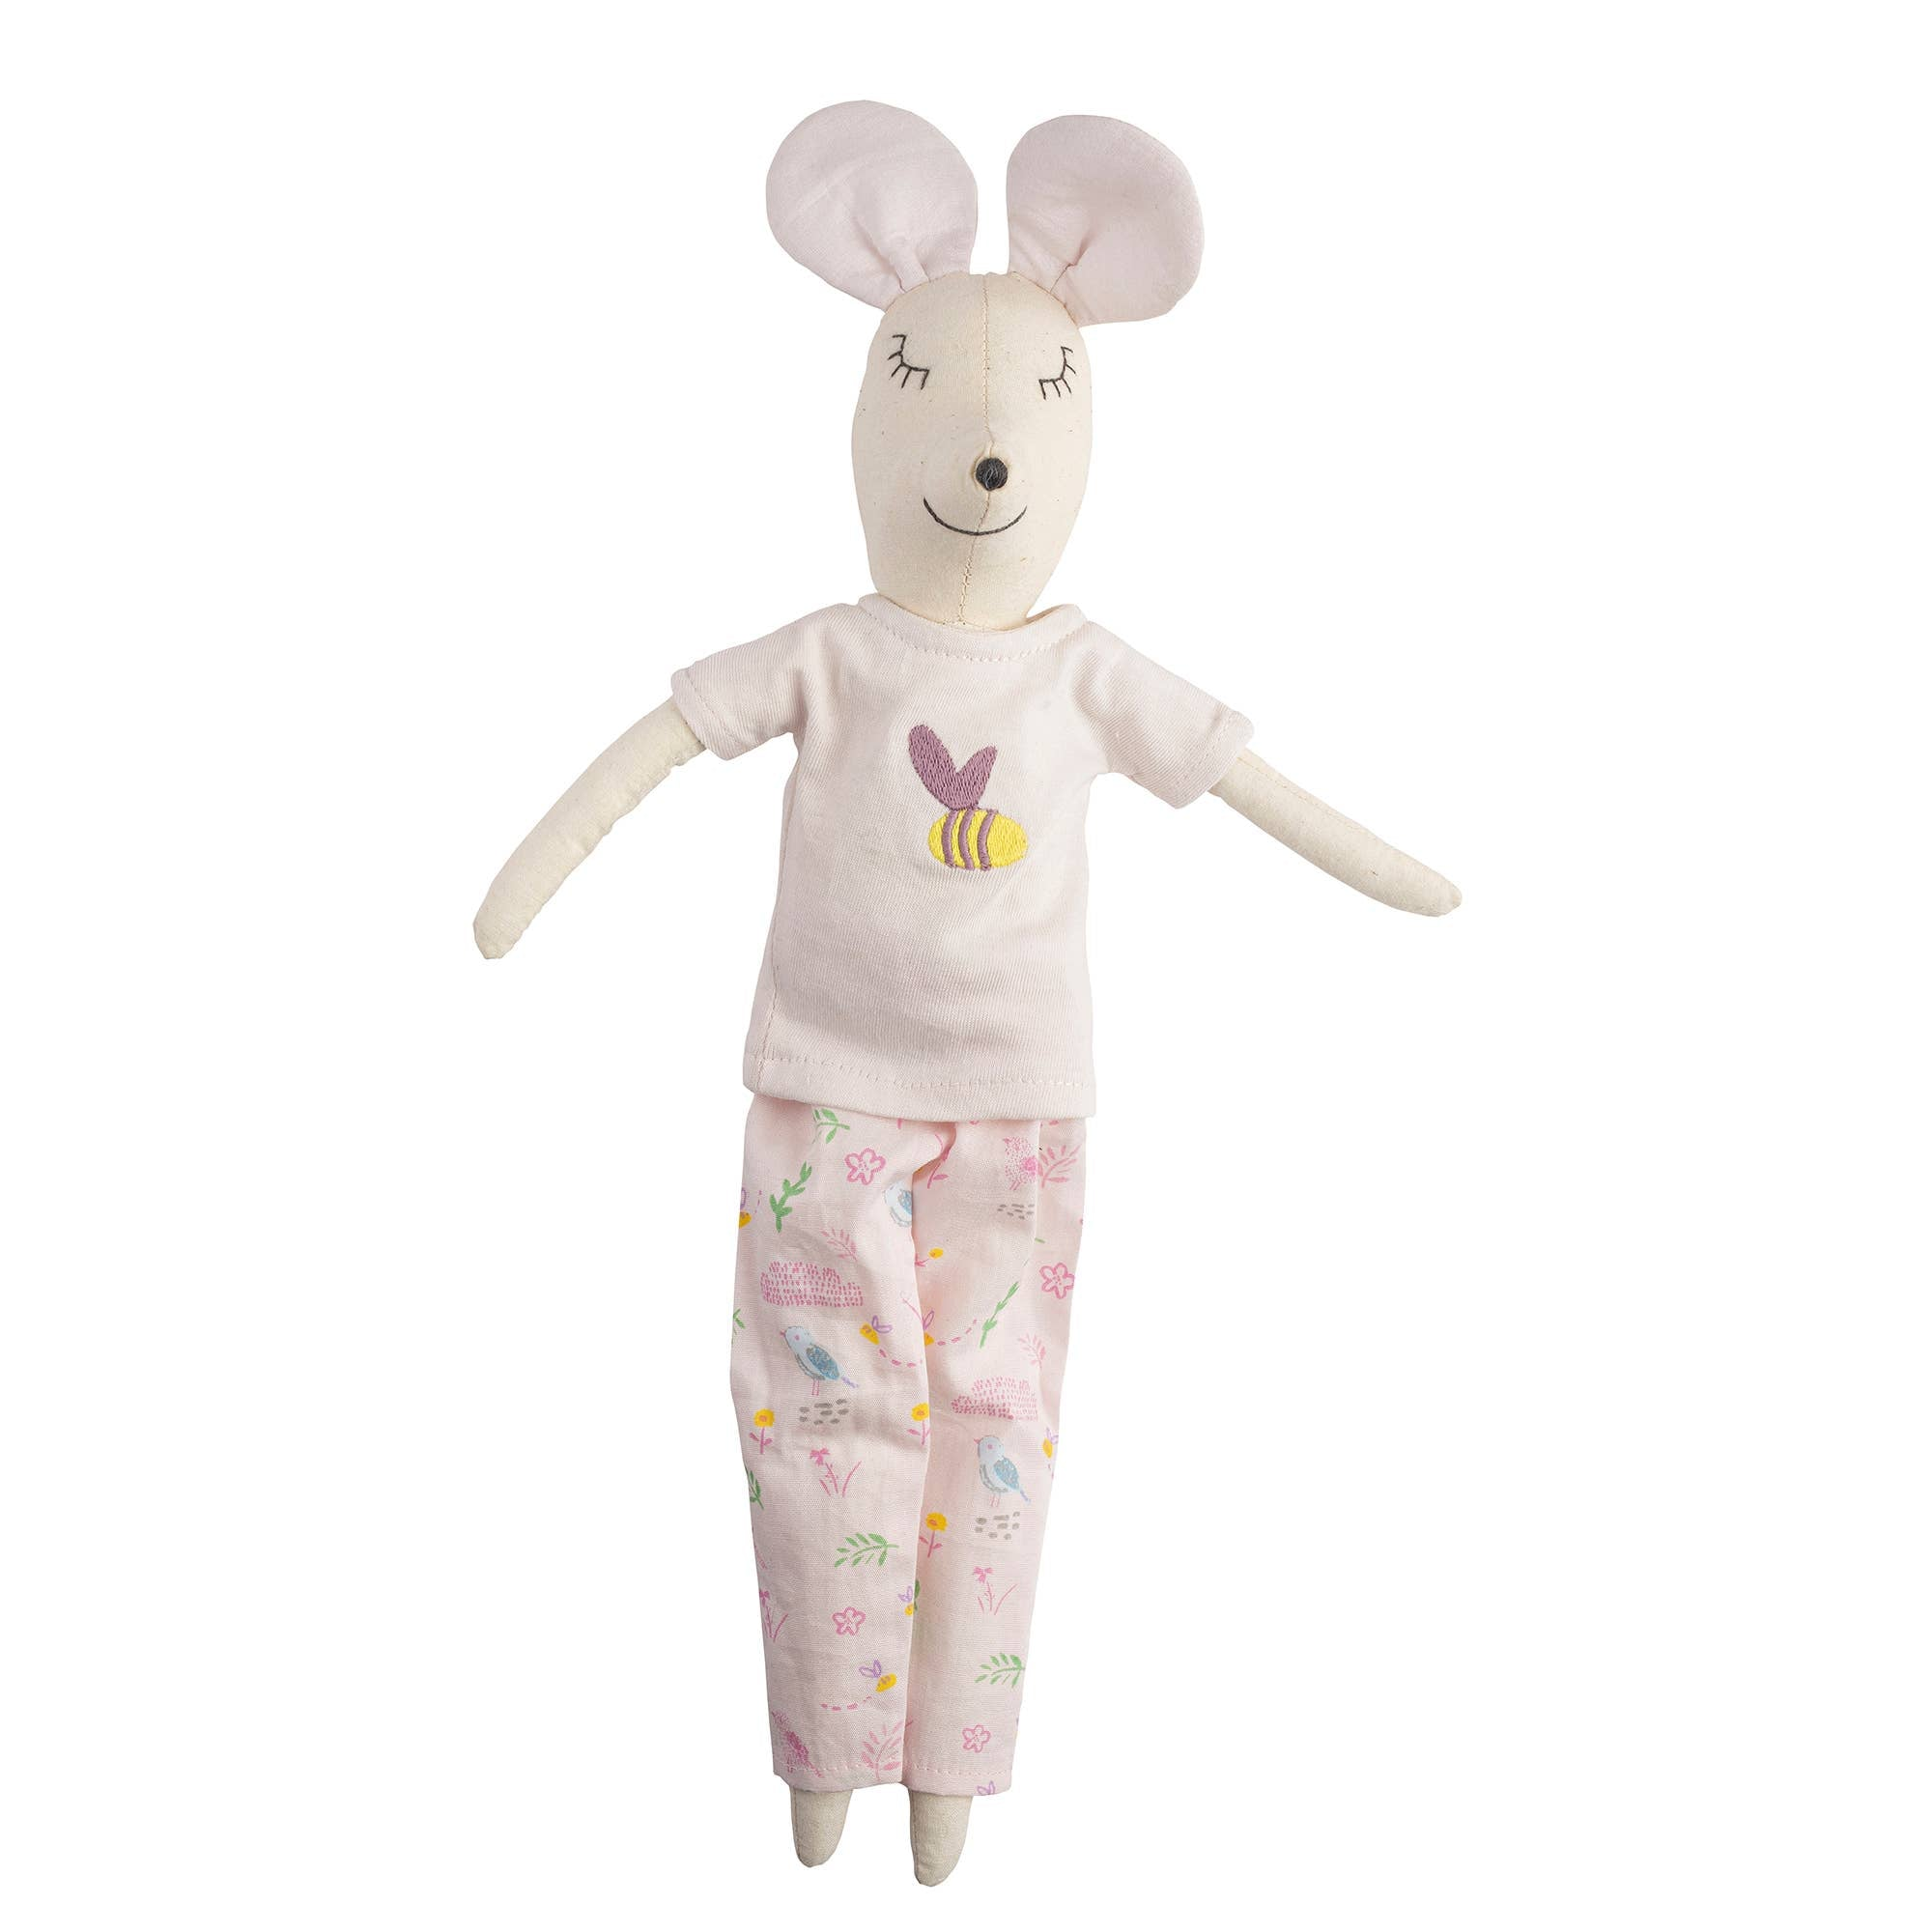 Lil Pyar Maya Mouse Slumber Party Doll